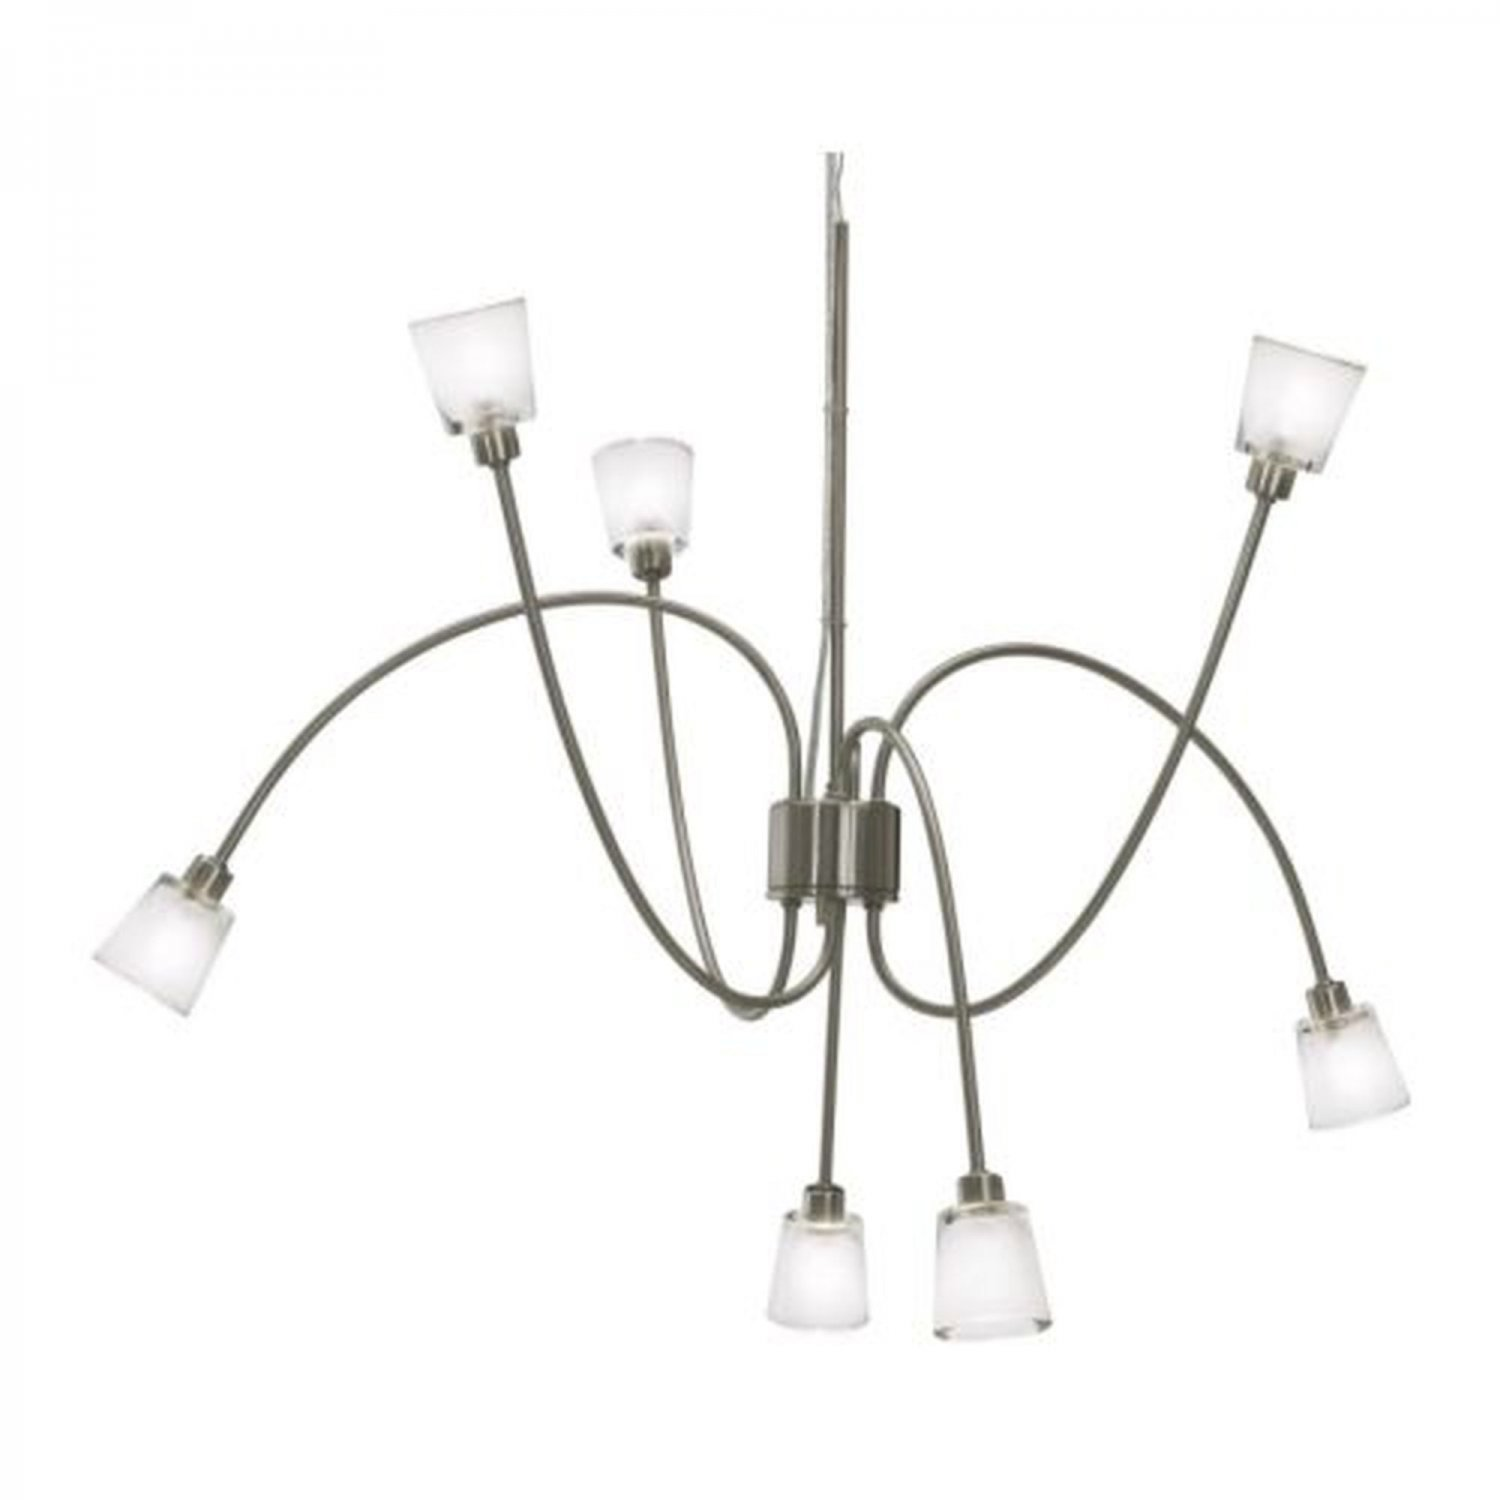 Ikea kryssbo chandelier light pendant lamp glass nickel steel adjustable 7 arm - Chandelier ceiling lamp ...